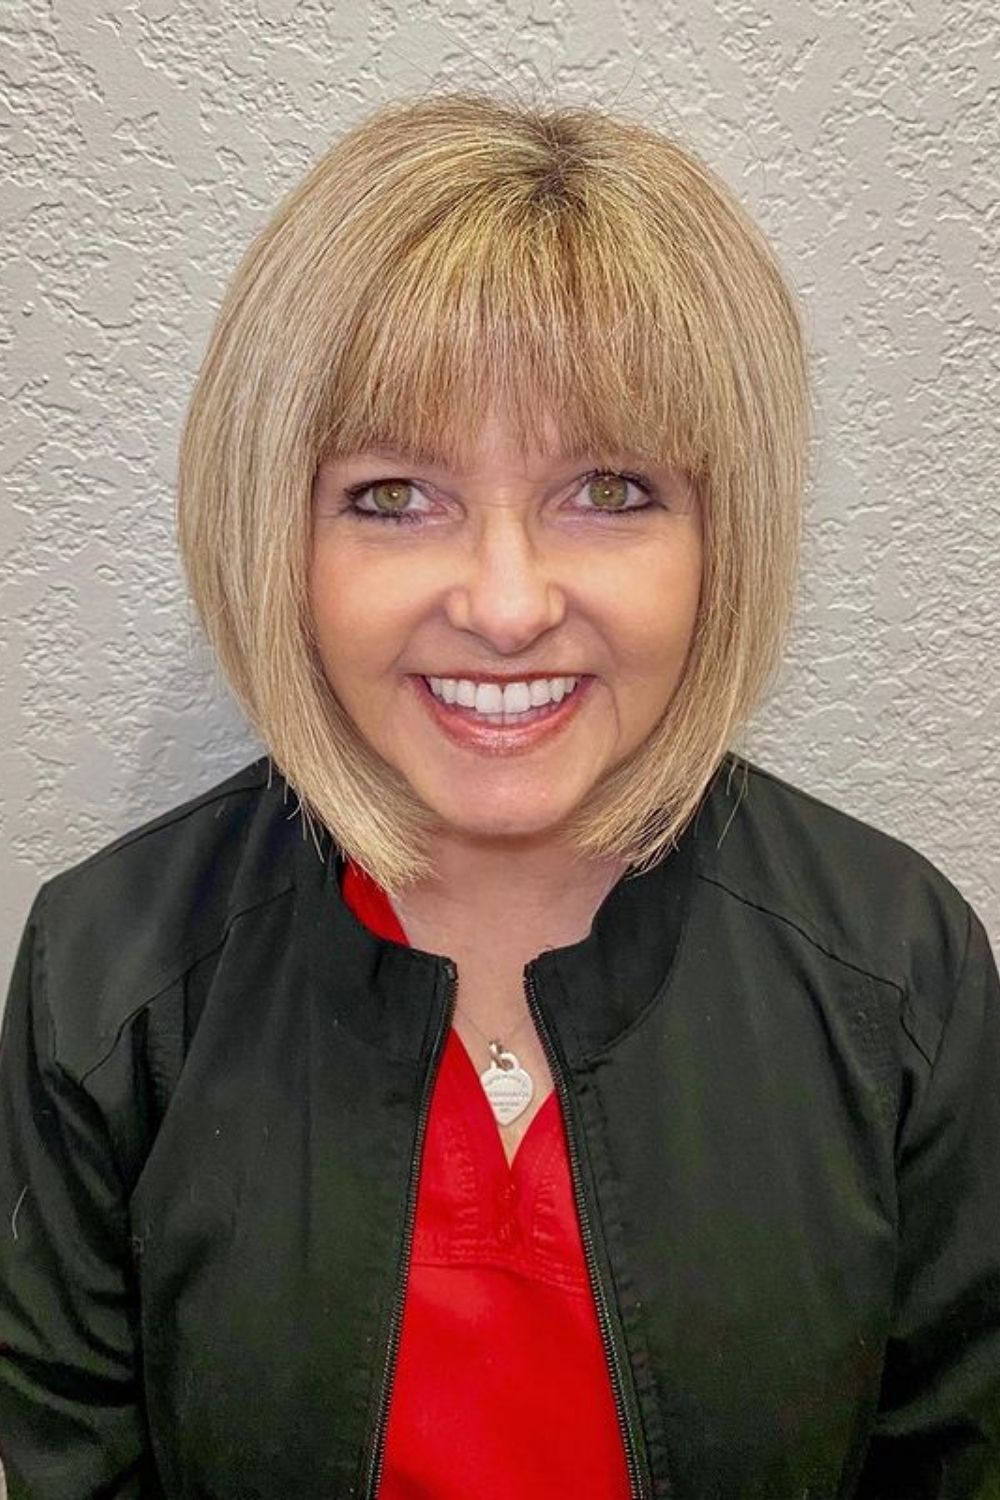 Trendy Short Haircut Styles for Women Over 50 (Updated 2021) 660c99dcdce0cd81295f6e3ee23f5ac0